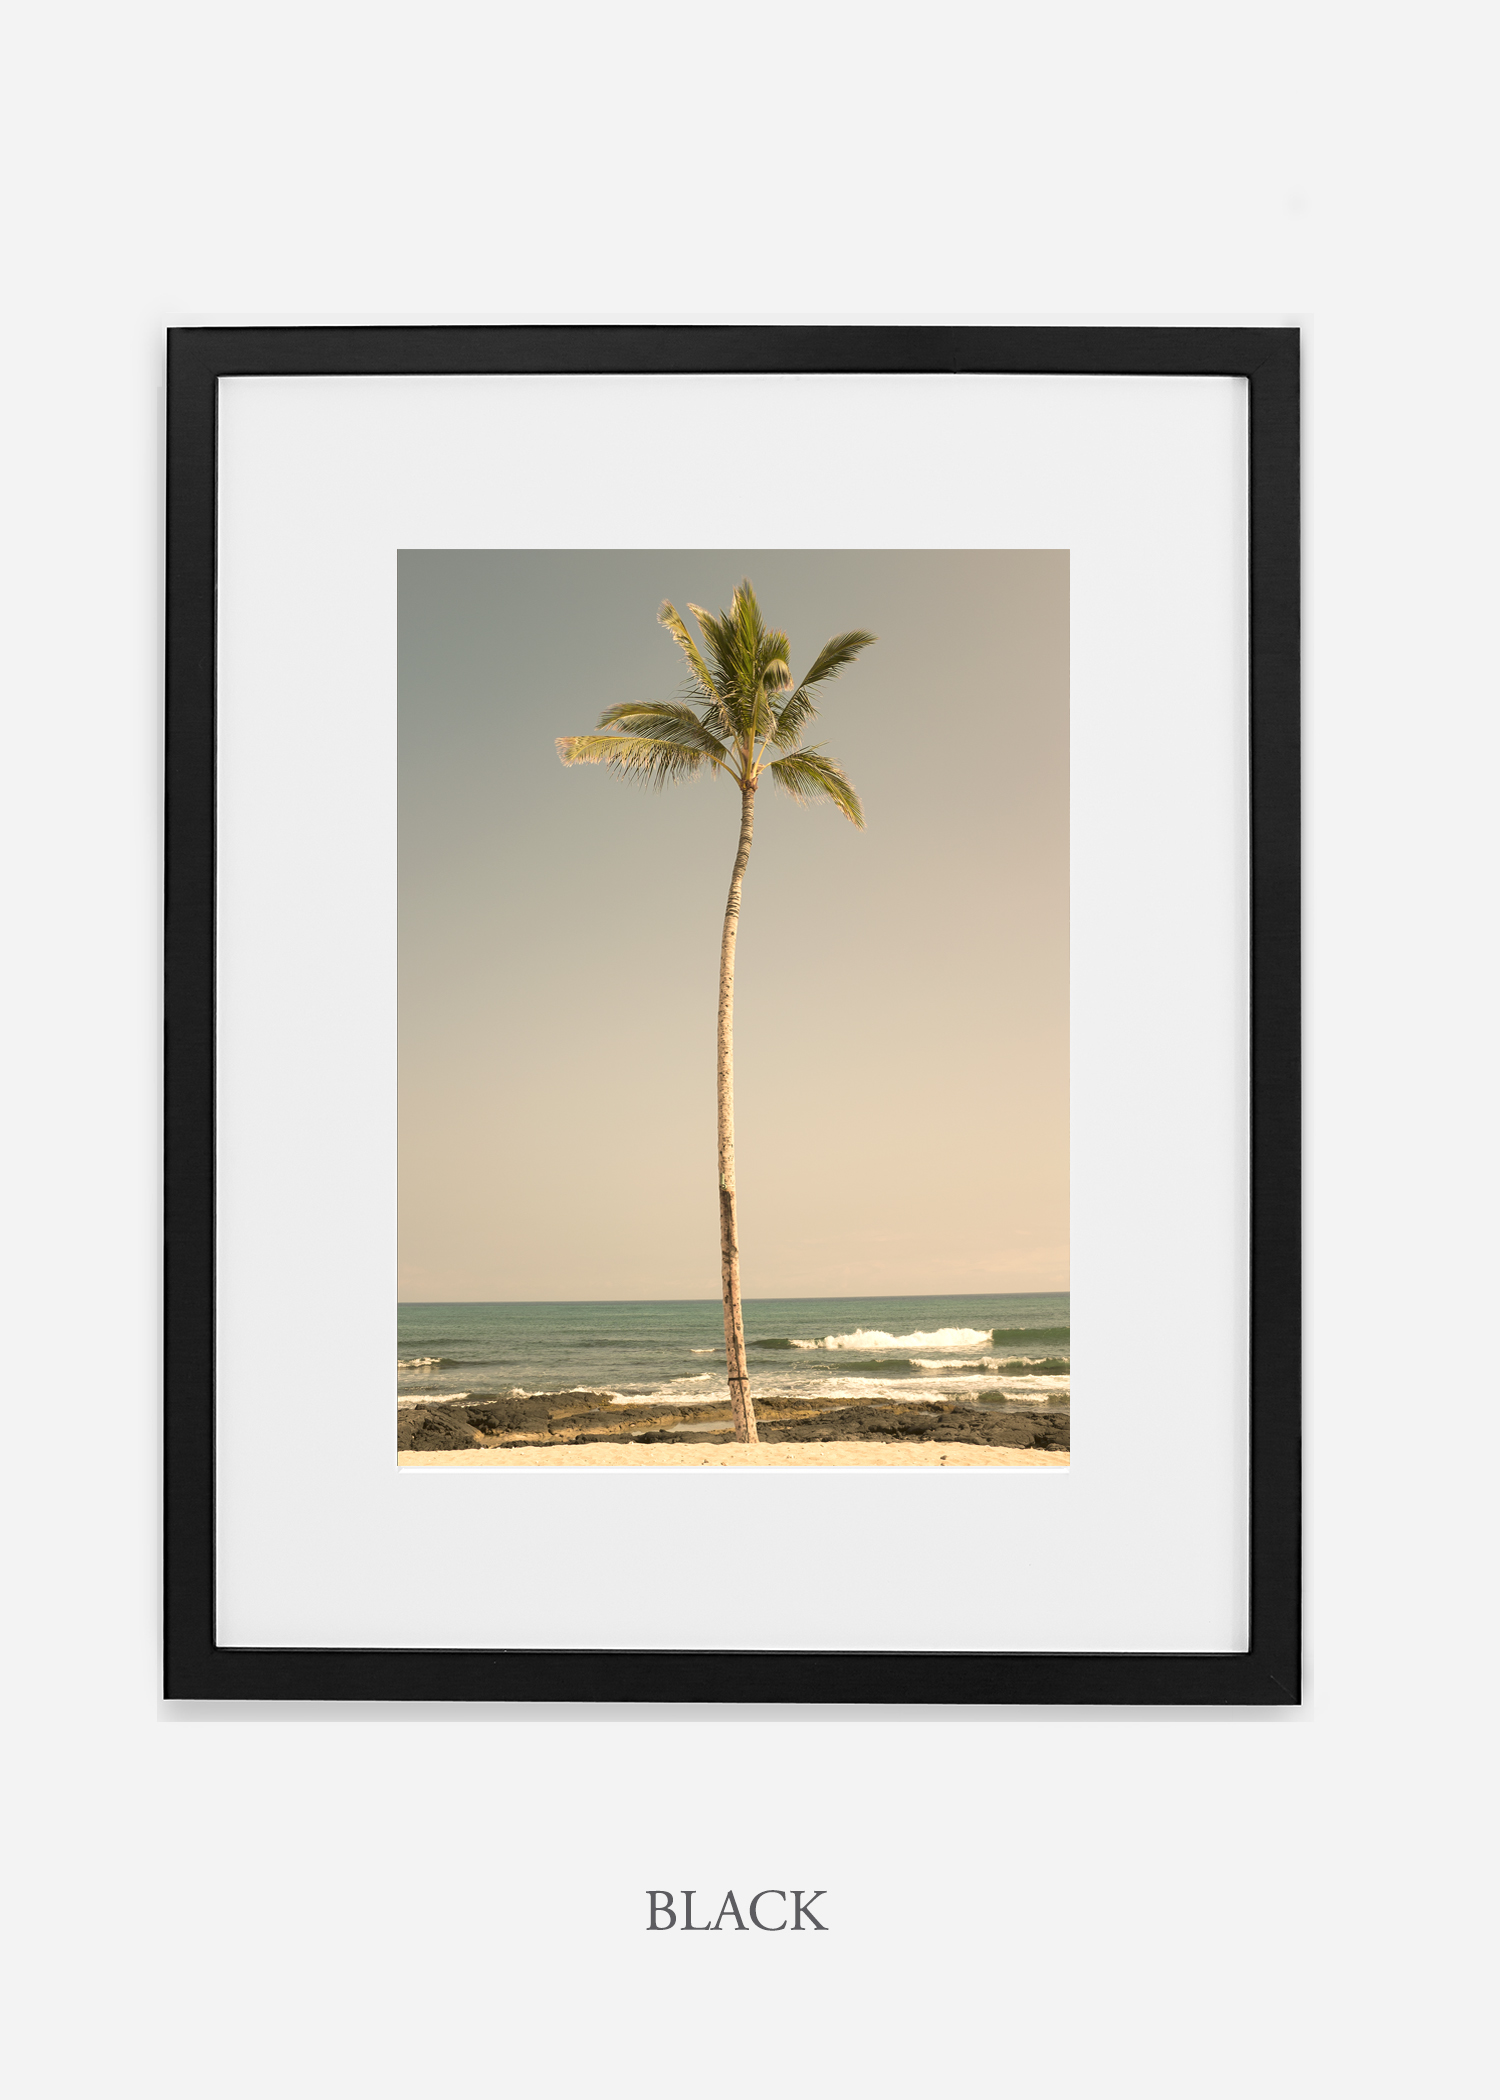 WilderCalifornia_PalmTree_No2_Art_Photography_interiordesign_blackframe.jpg